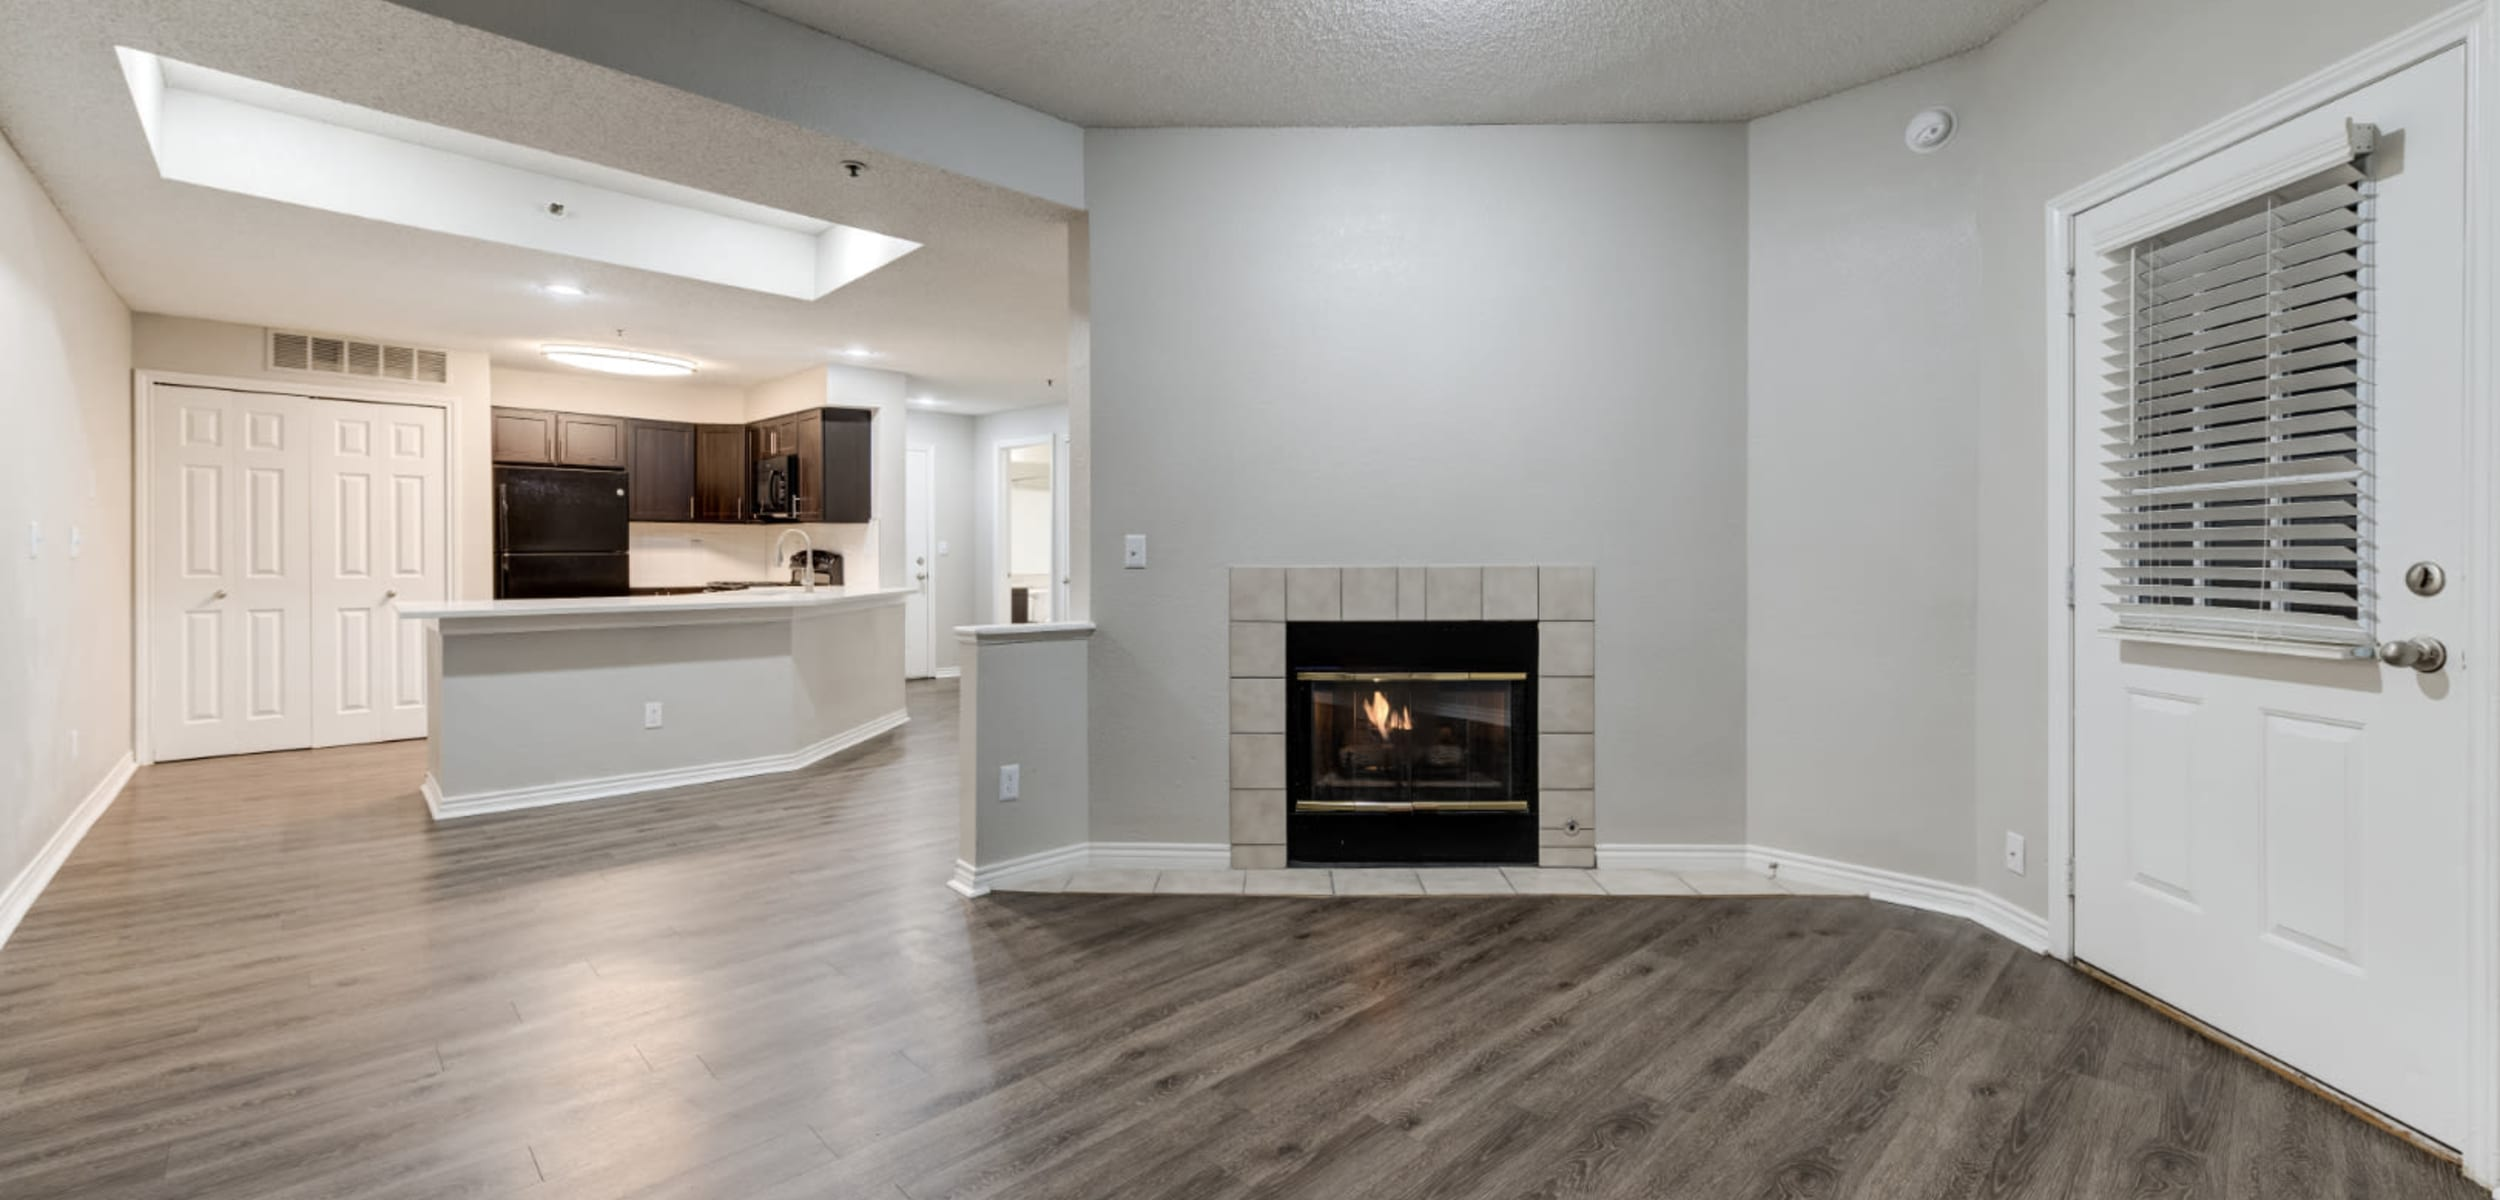 Spacious living area with wood flooring and fireplace at Ashford Belmar in Lakewood, Colorado